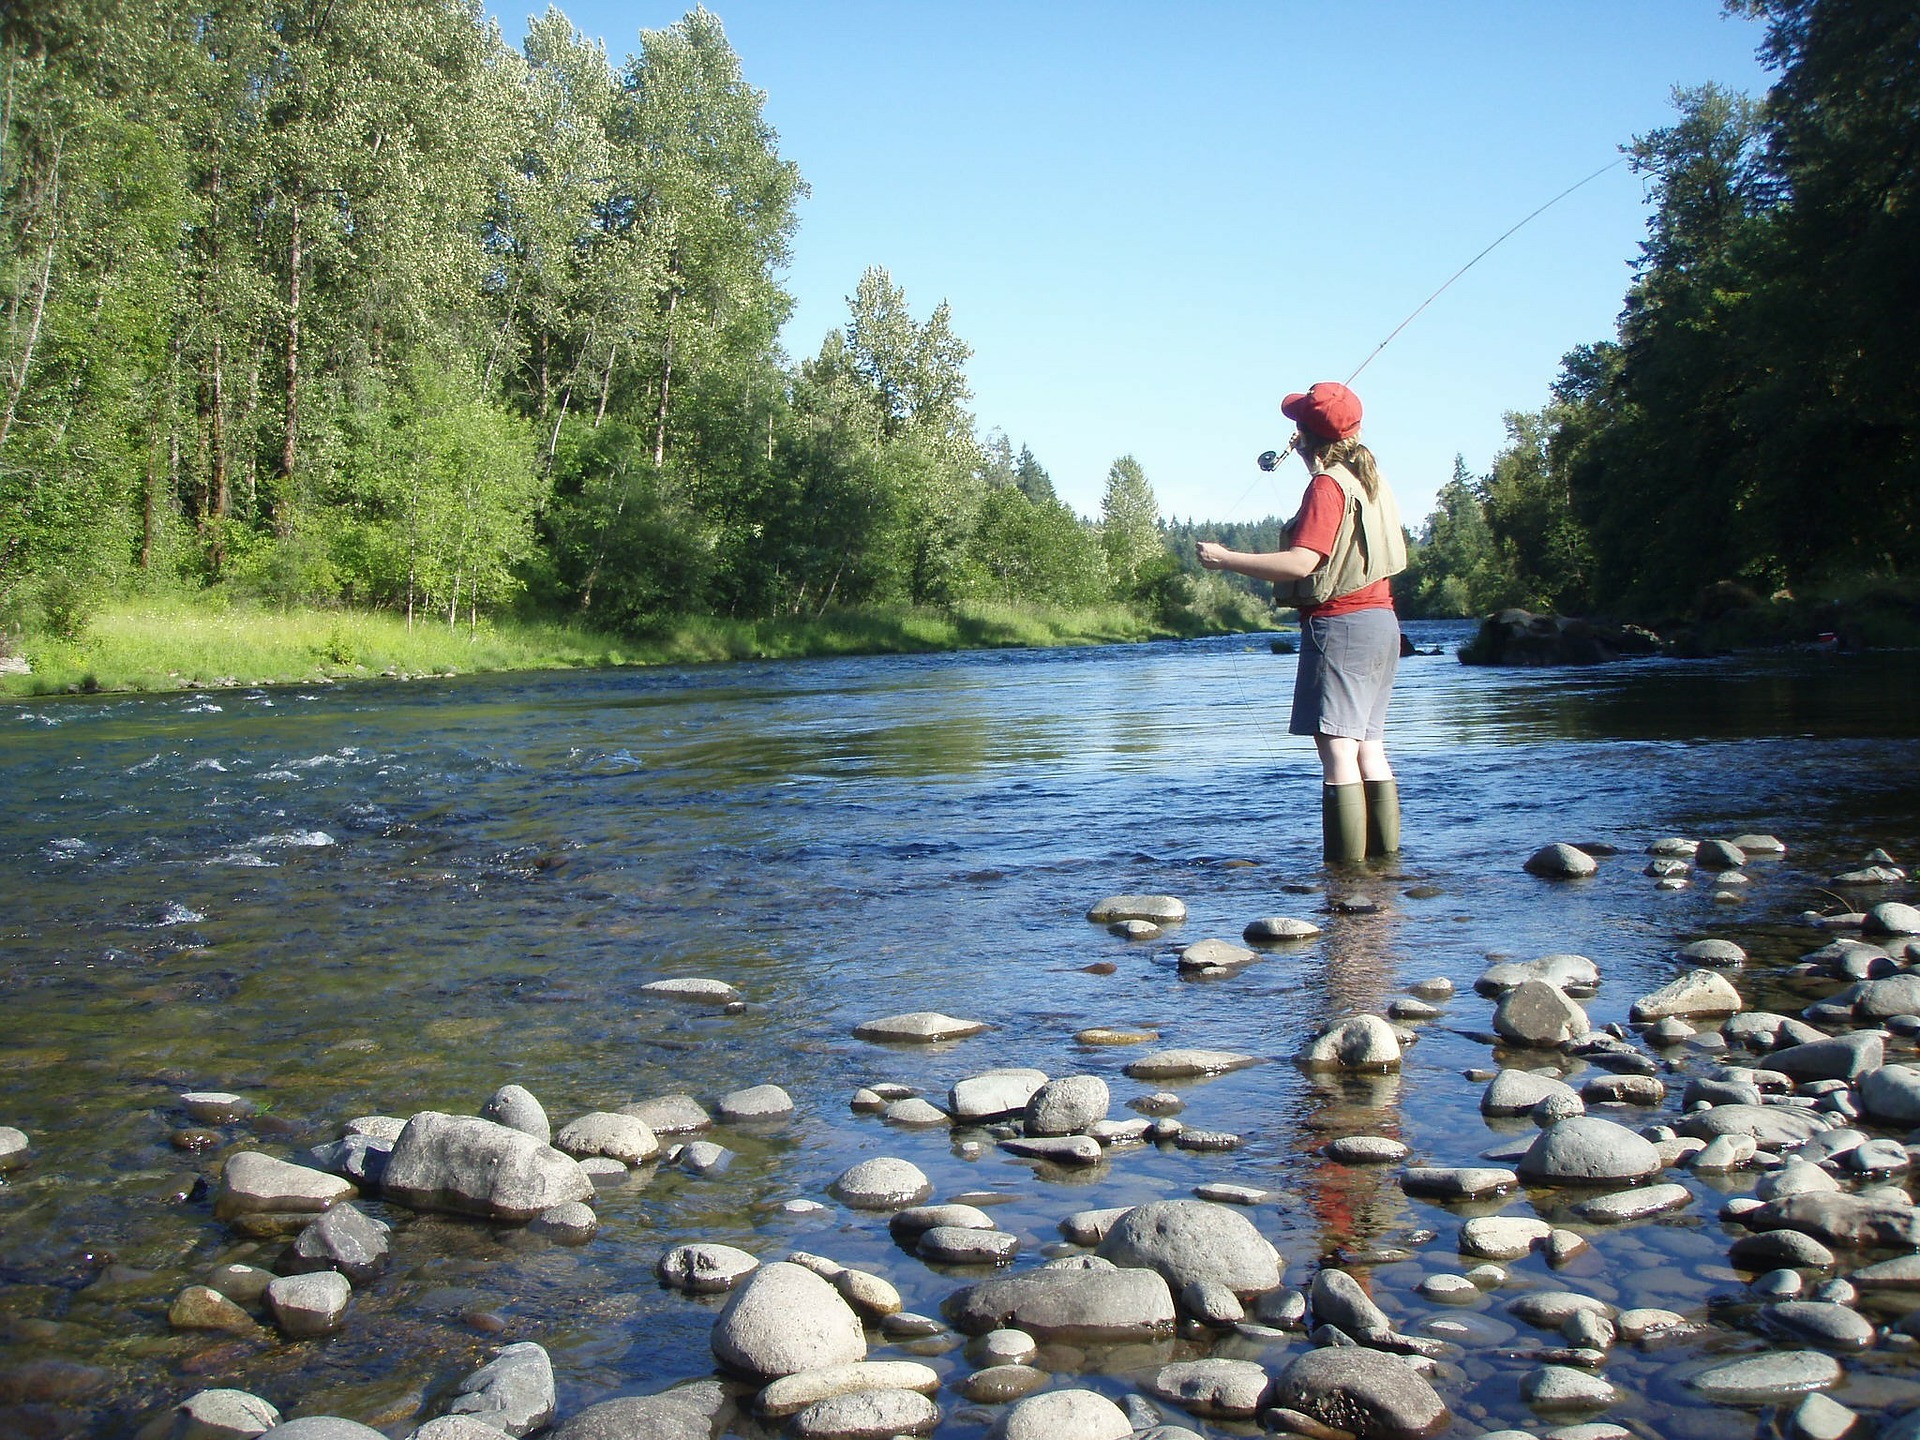 Fishing for trout in Oregon